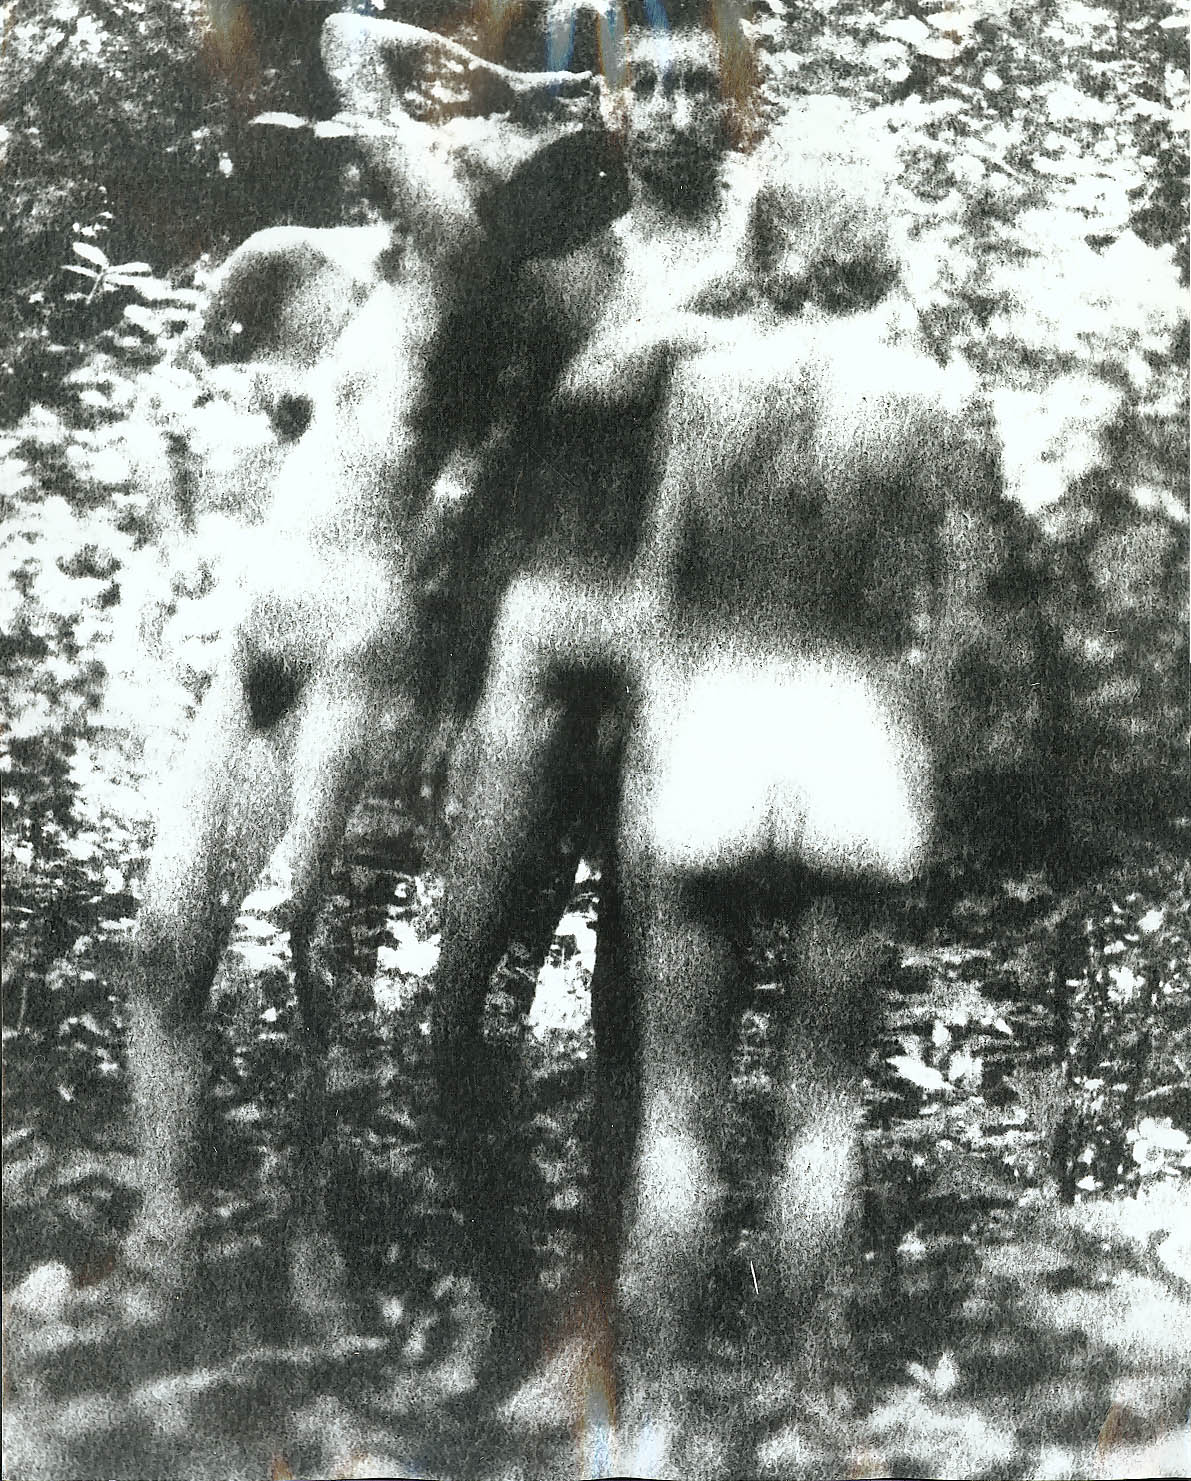 3 nudes in woods 2 facing Gene Szafran photo 1960s